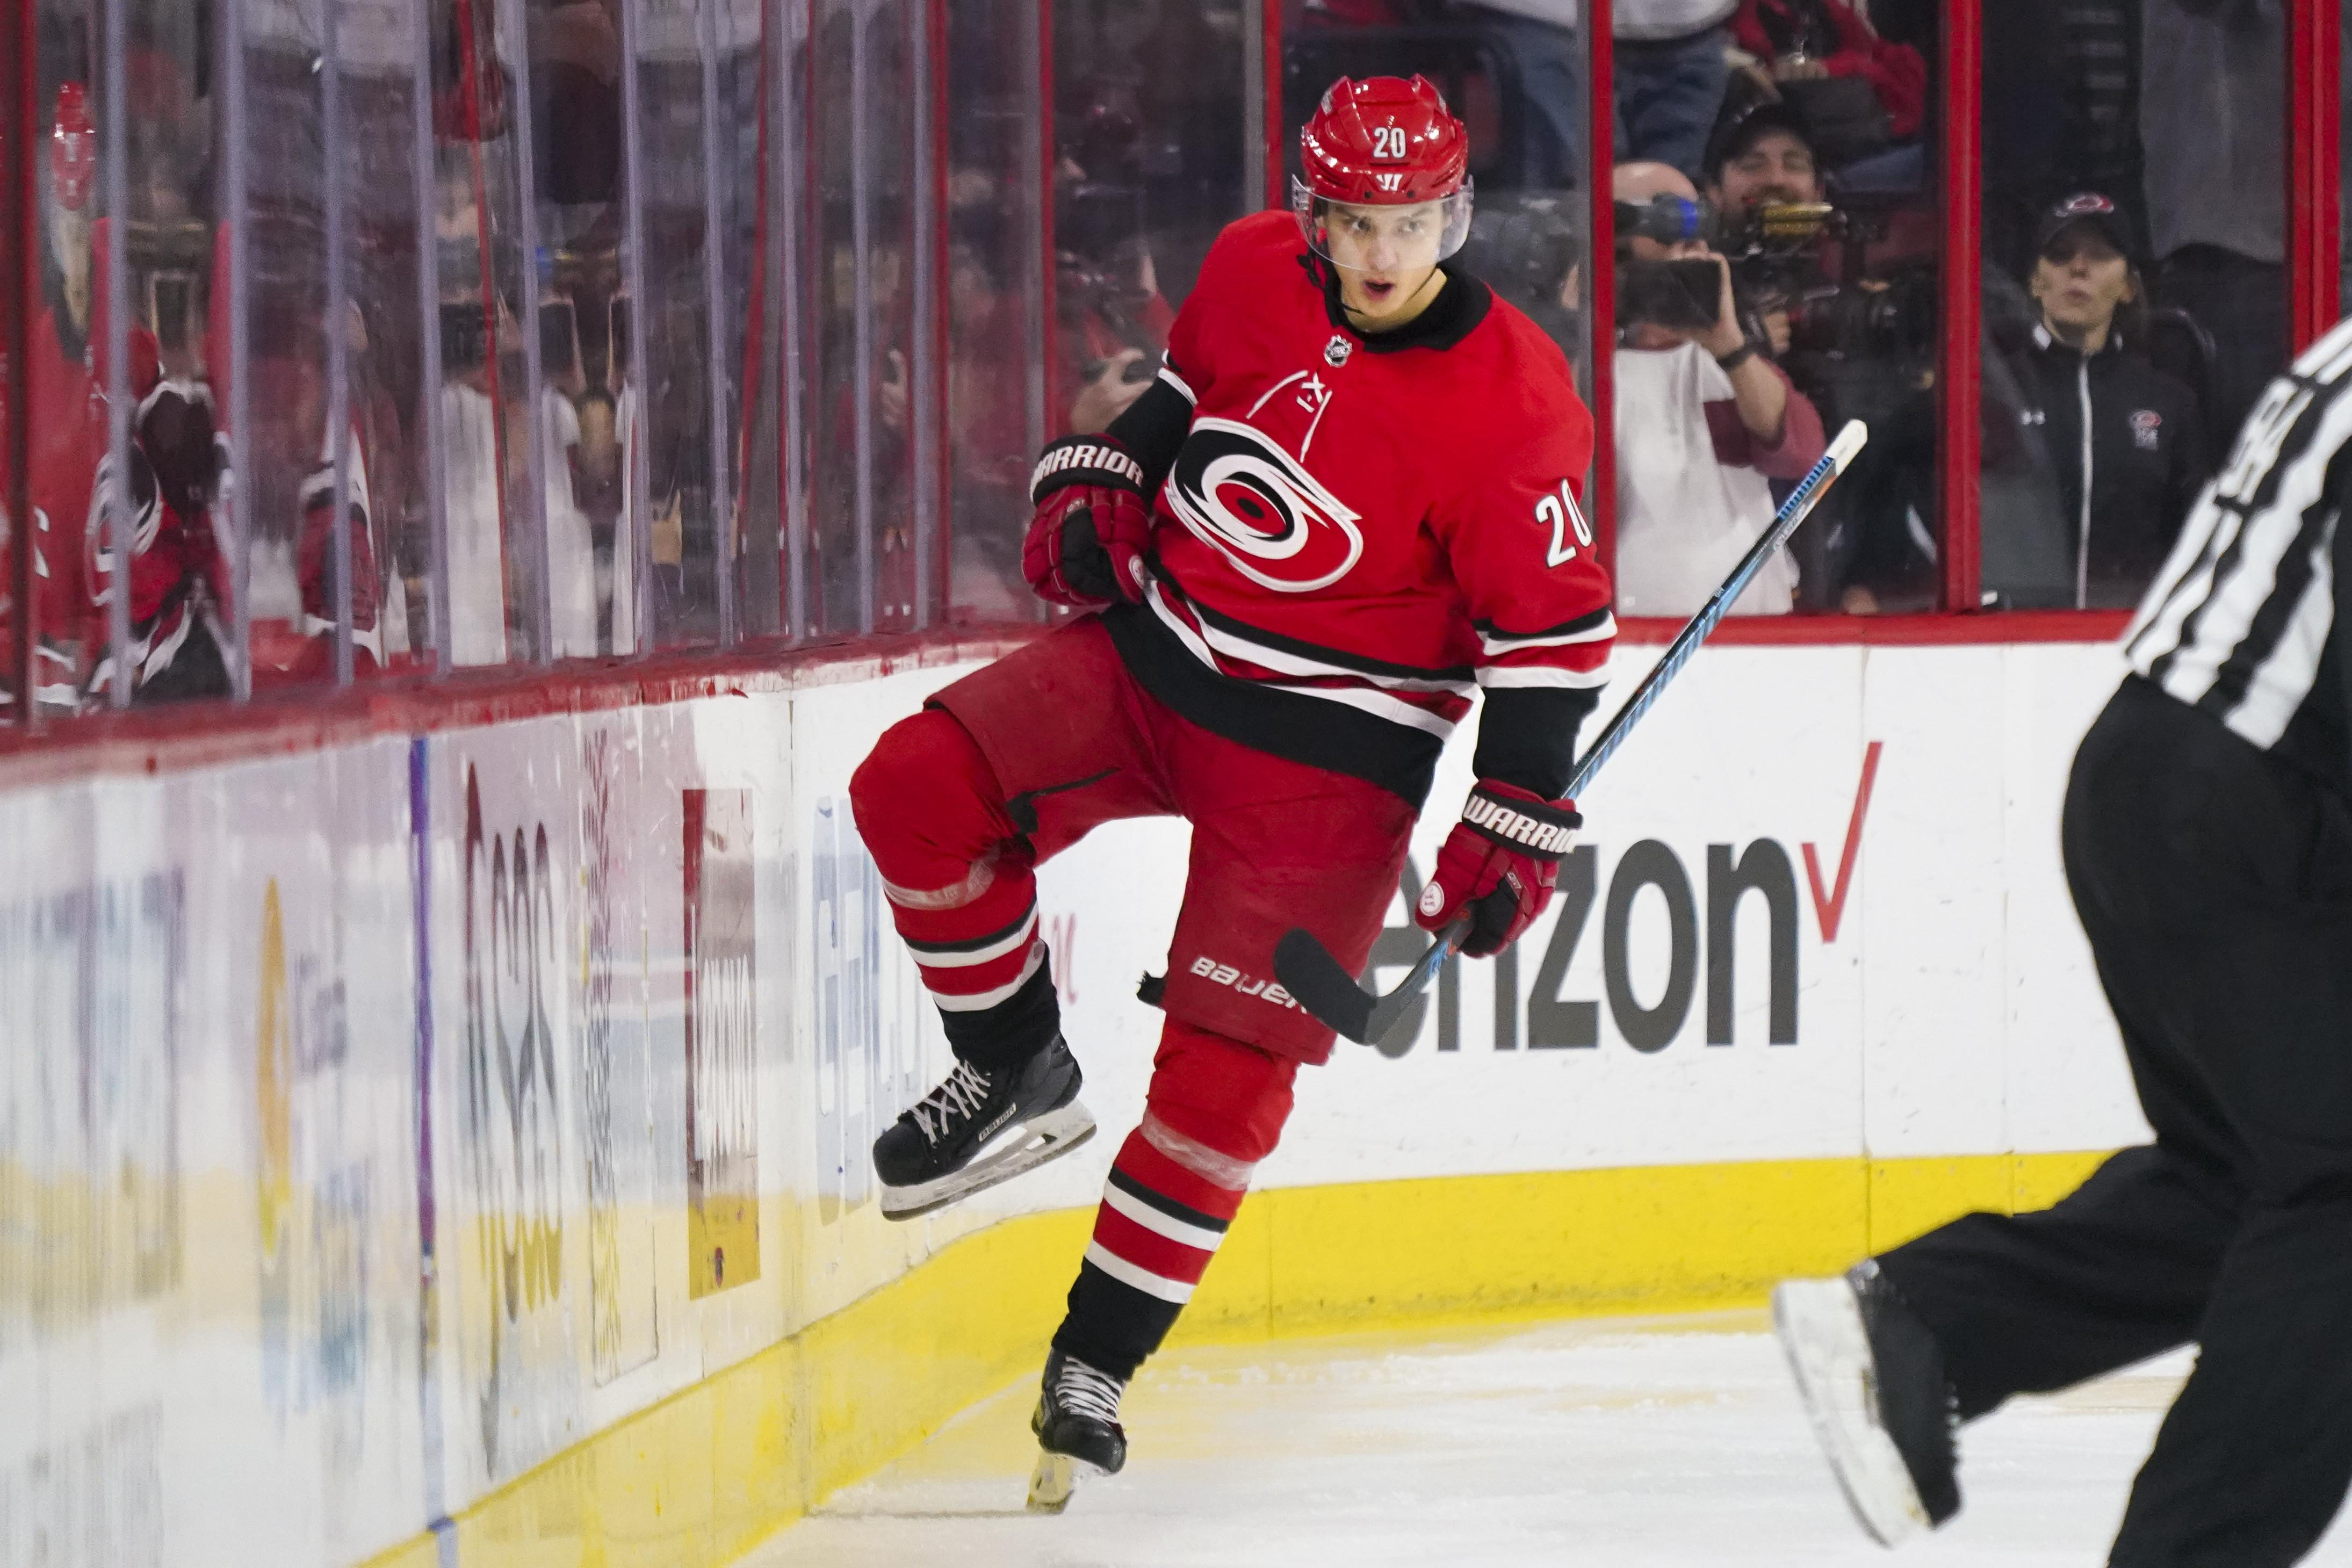 Hurricanes' Ward stops 27 photographs in shutout of Montreal